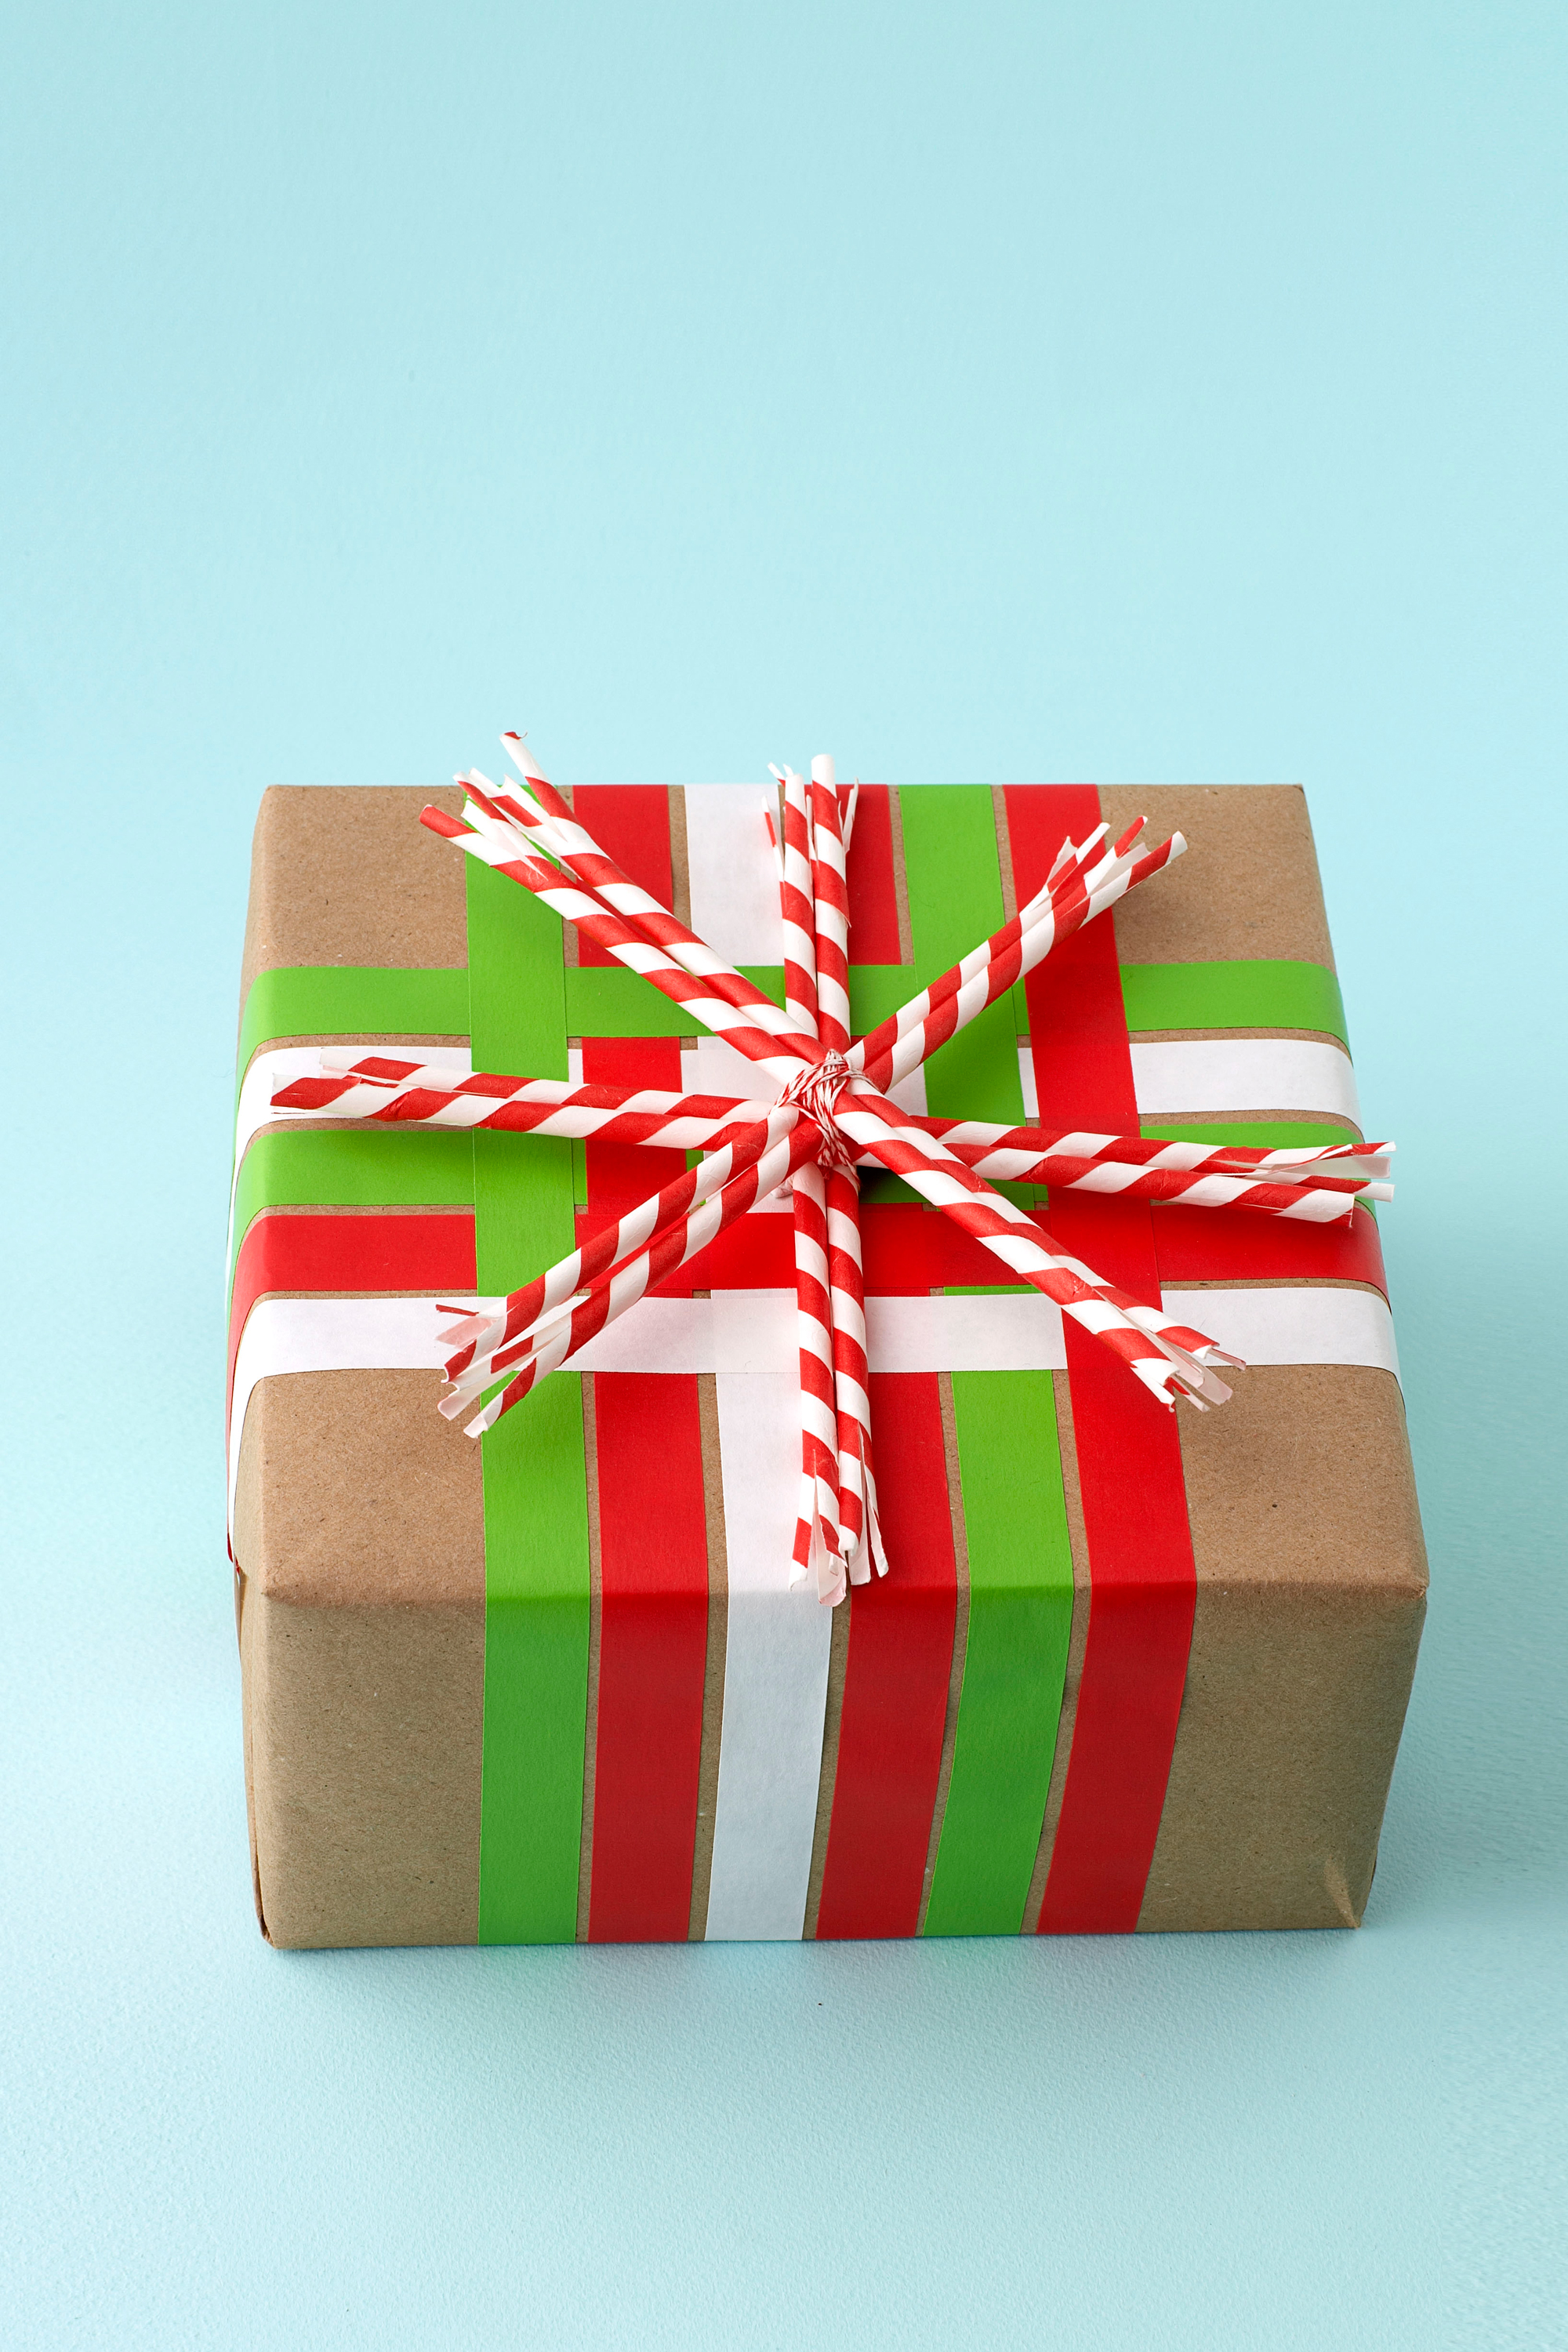 30 Unique Gift Wrapping Ideas for Christmas How to Wrap Holiday